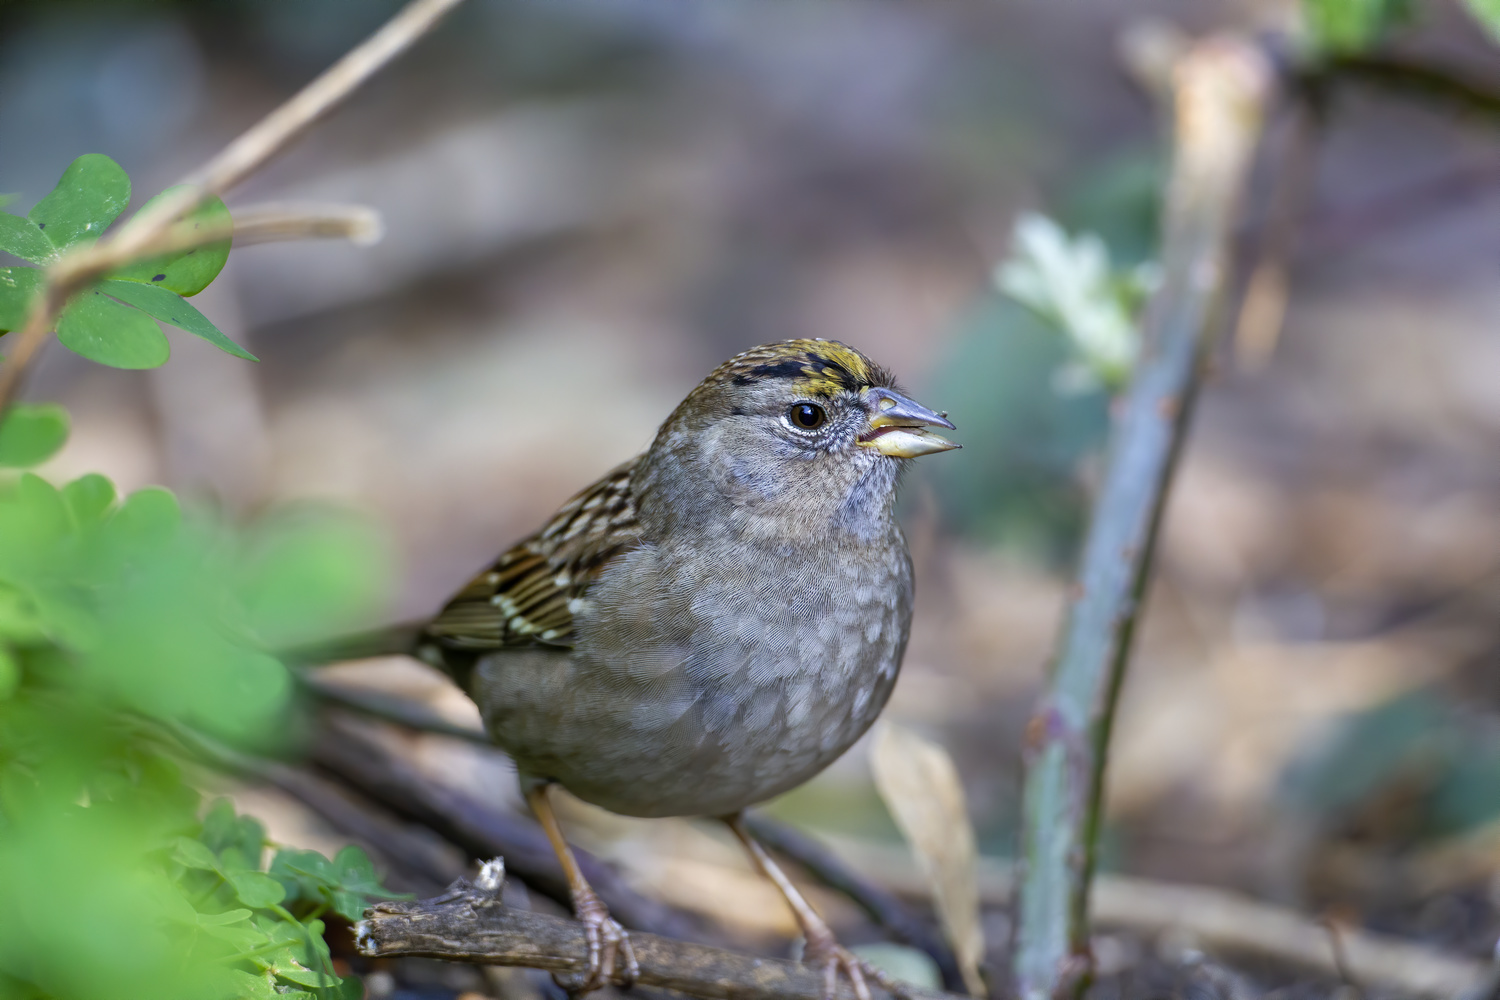 Golden-crowned Sparrow by Nickolas Thurston